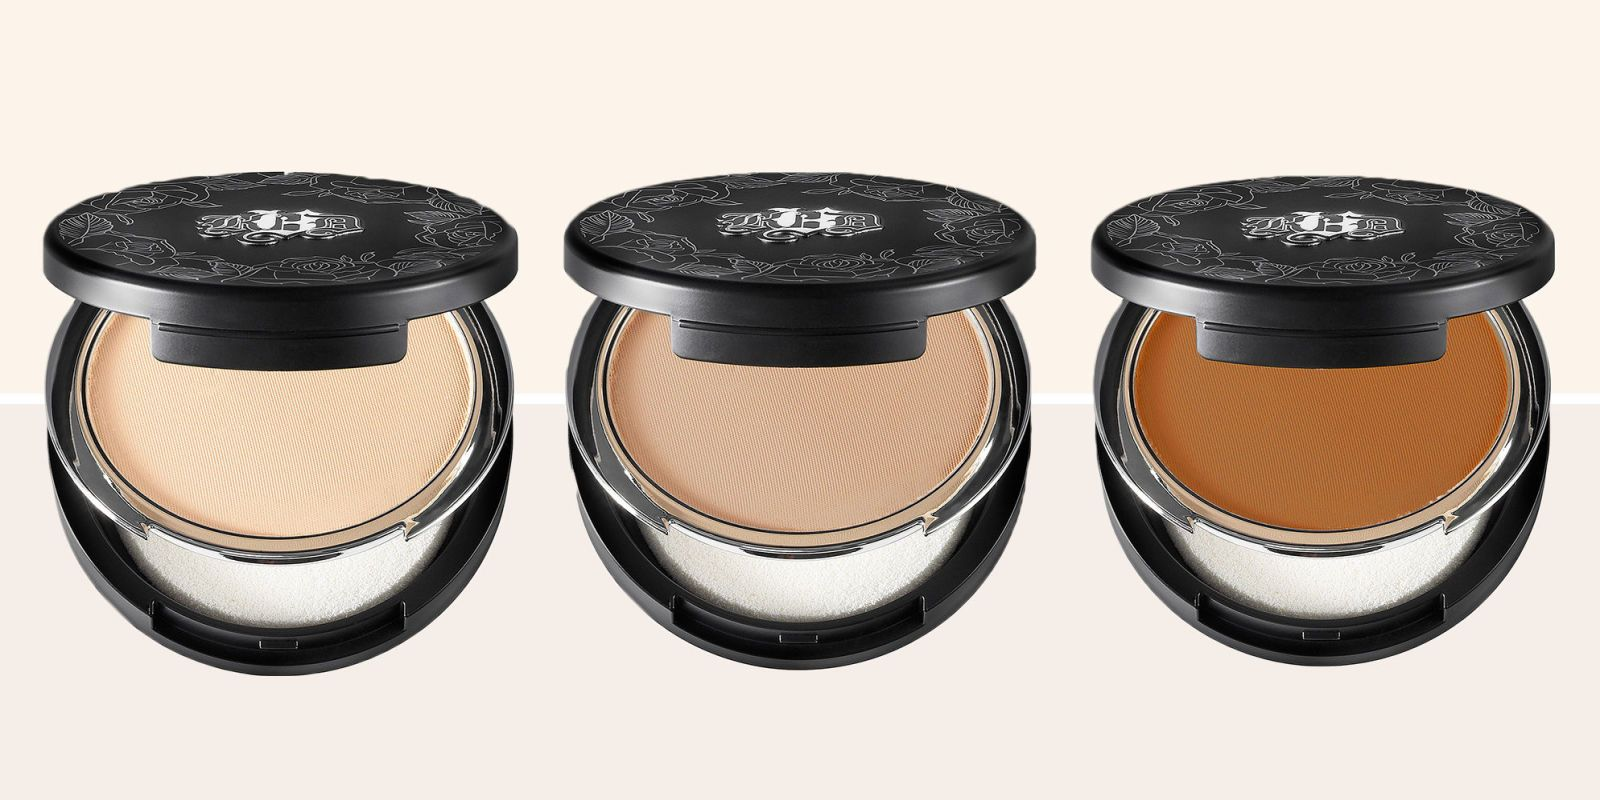 Give Your Skin An Irl Filtered Finish With These Powder Foundations Powder Foundation Best Powder Foundation Foundation For Oily Skin